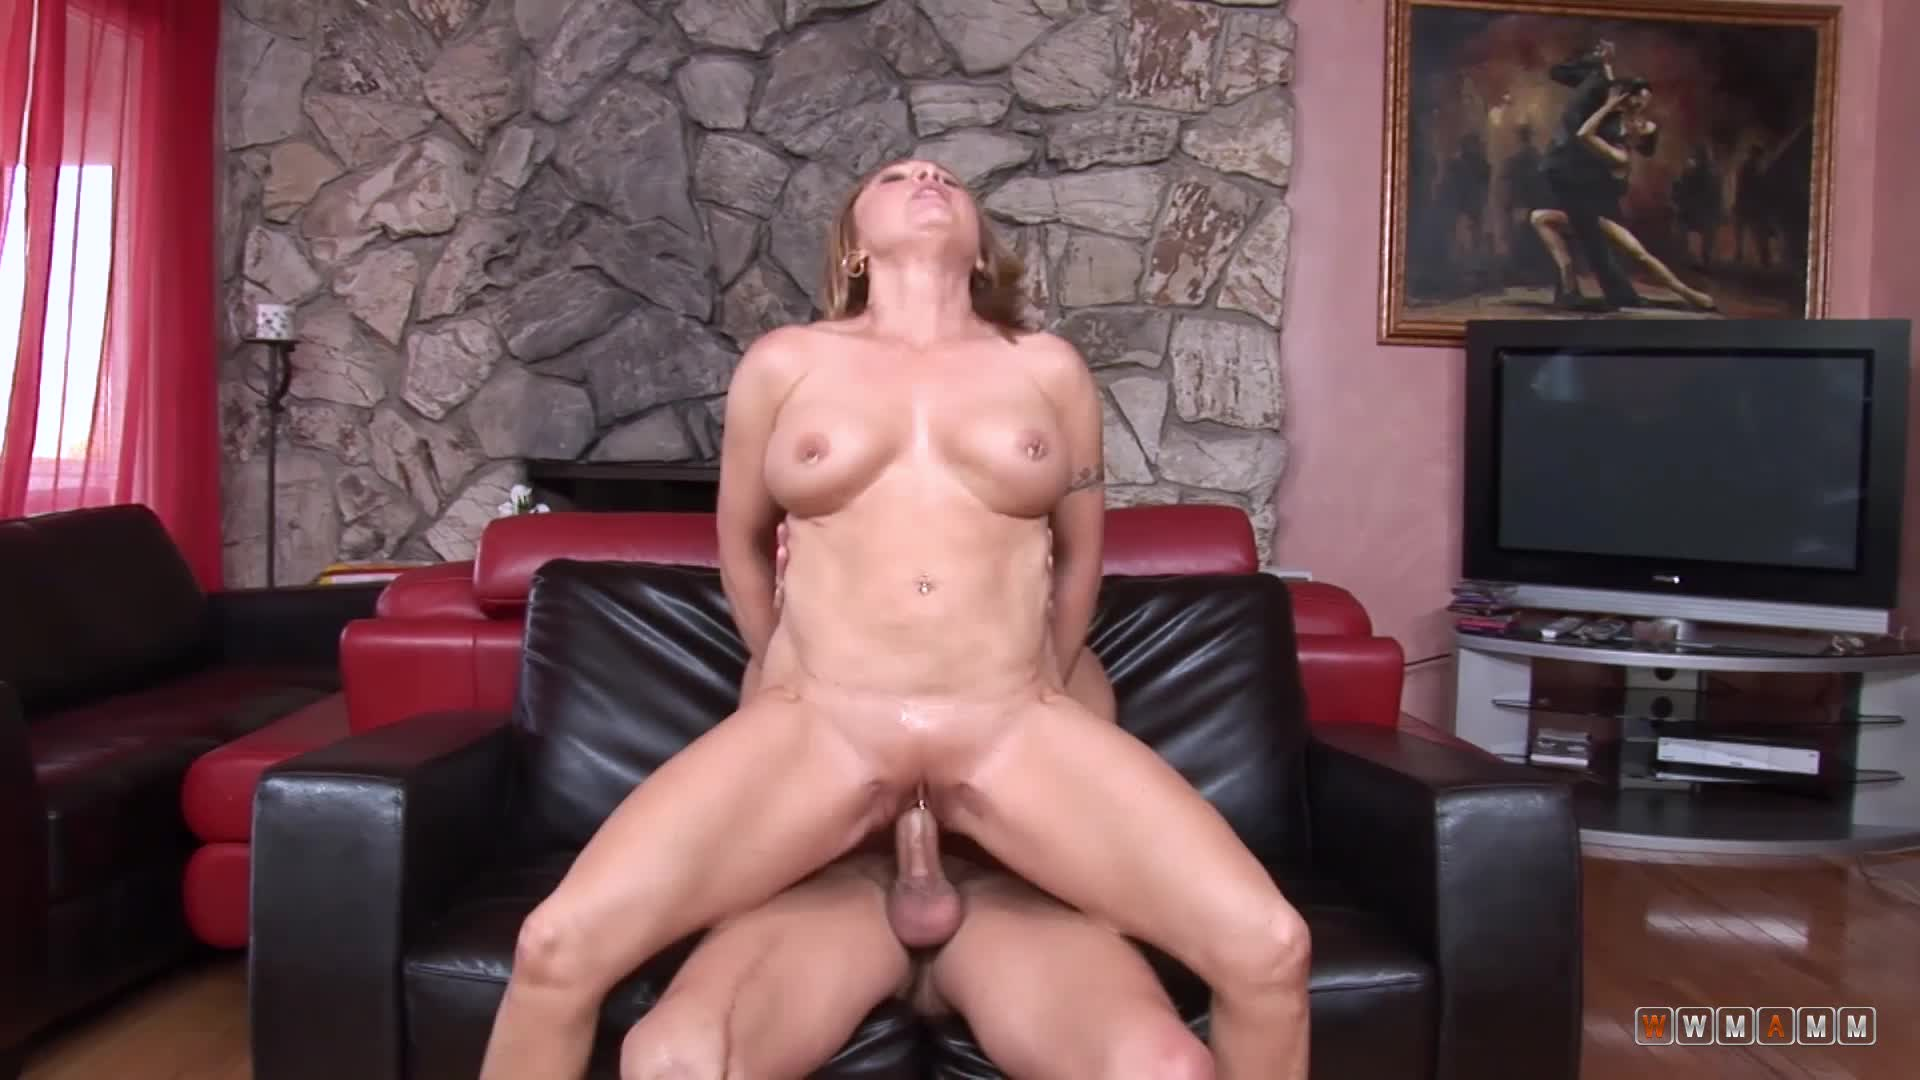 Horny Old Milf Fucks Young Guys Every Opportunity She Has